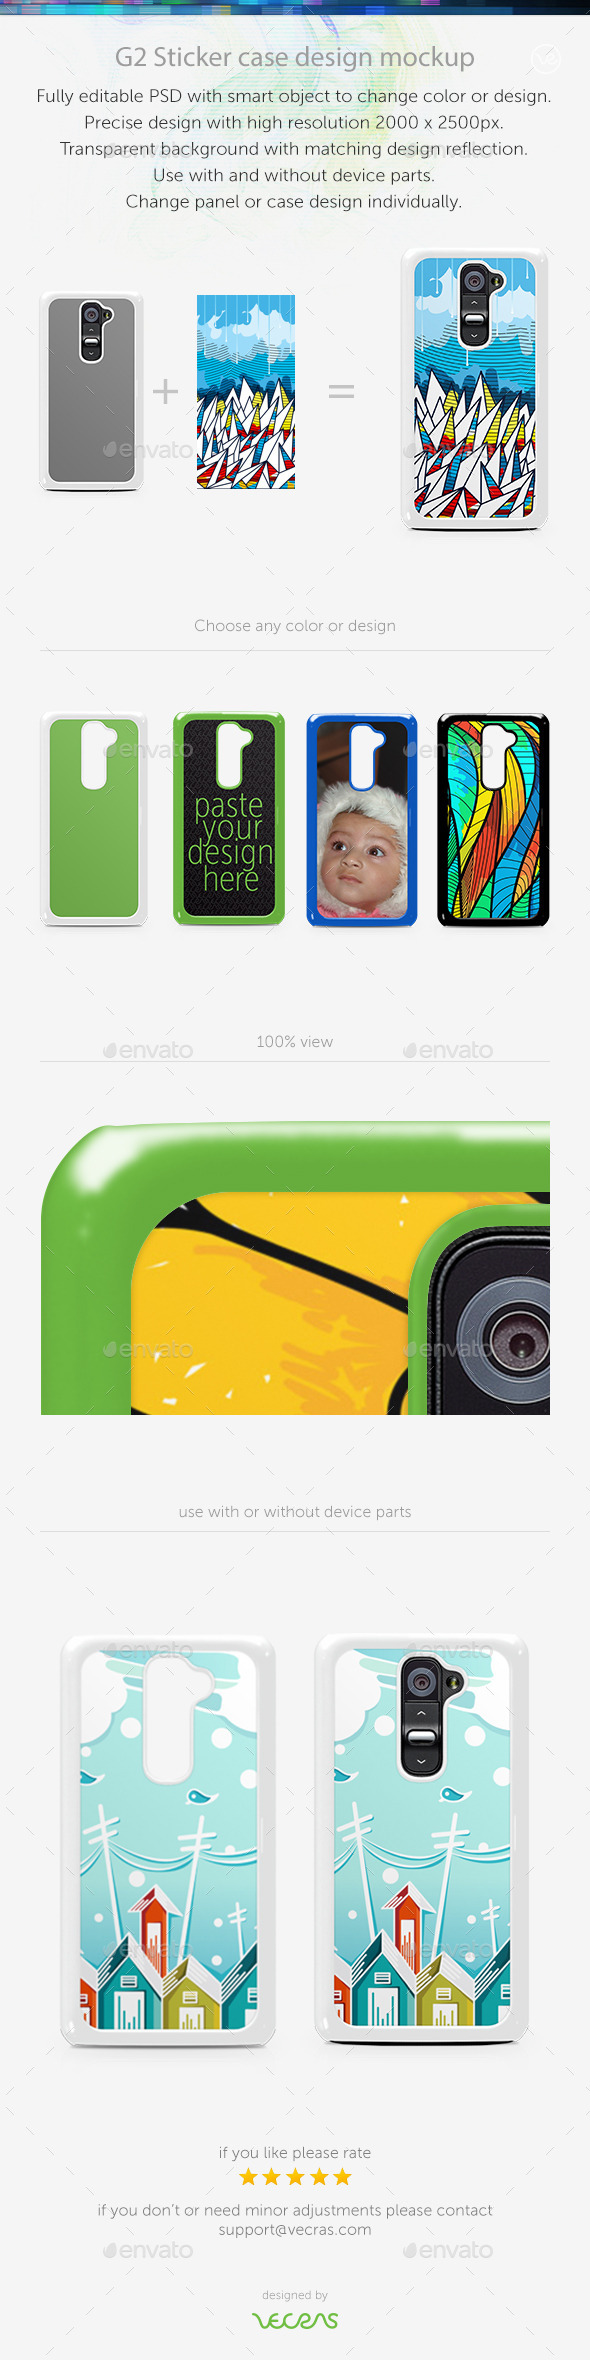 GraphicRiver G2 Sticker Case Design Mockup 9630305